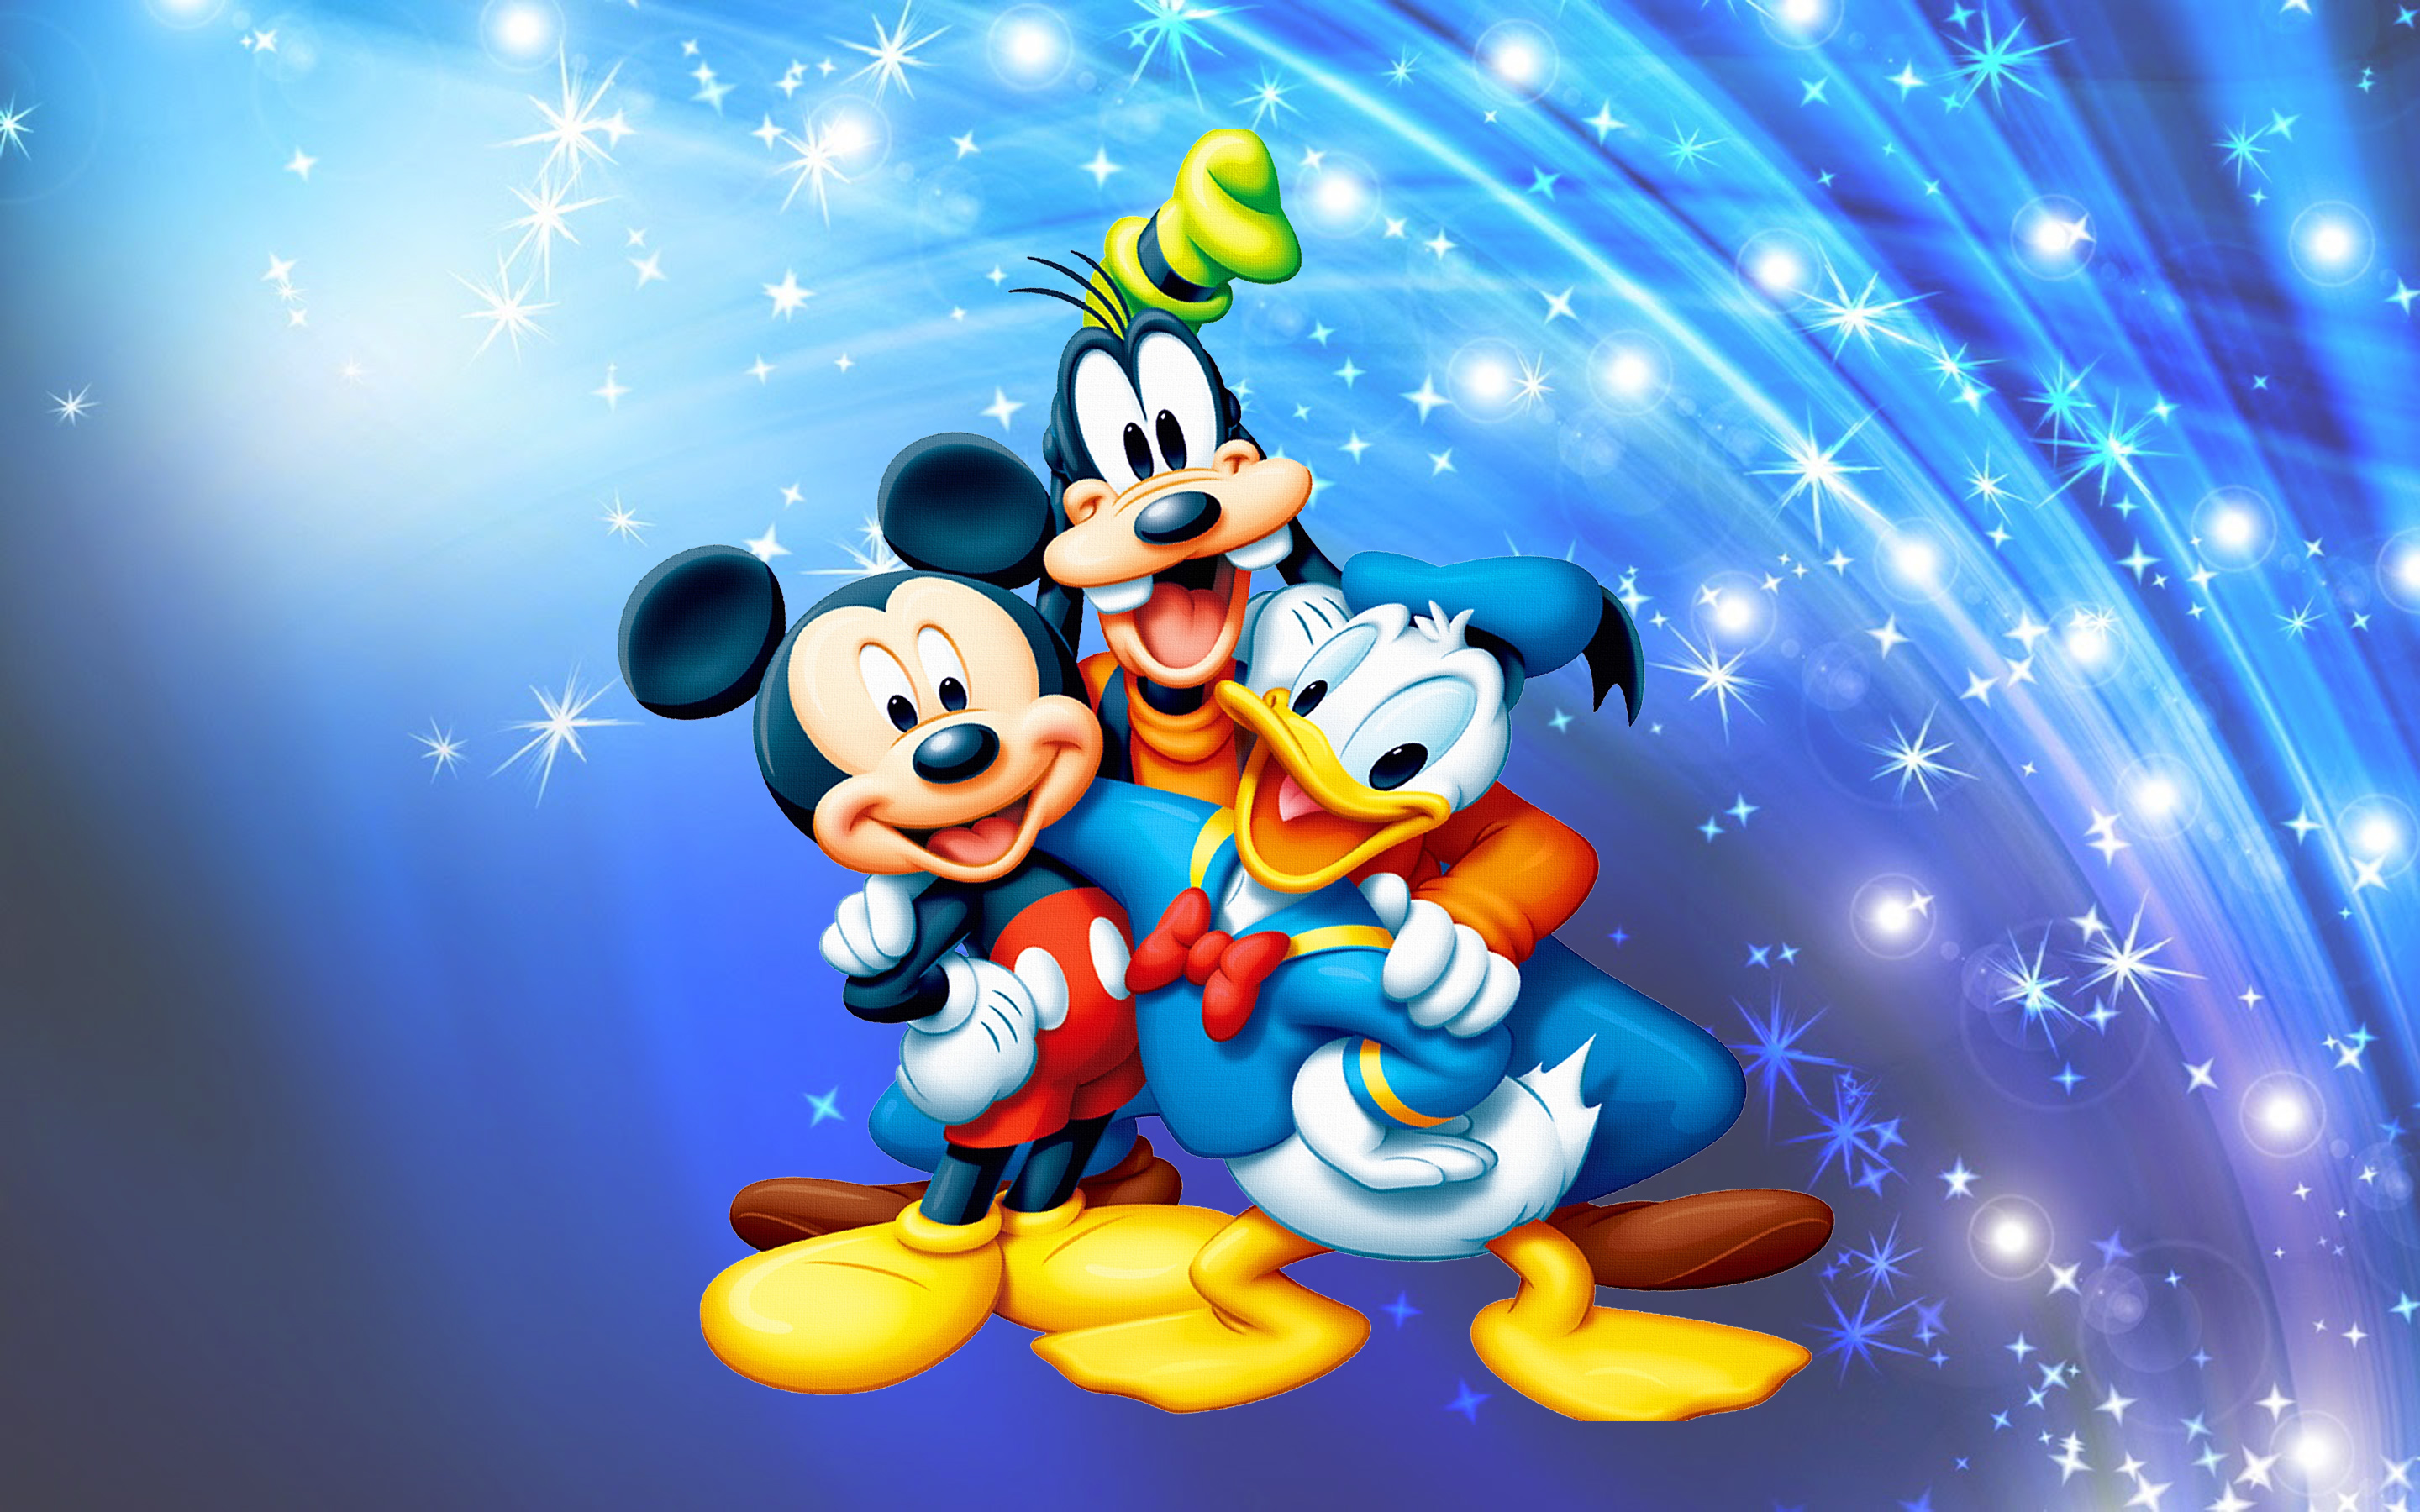 Mickey Mouse Donald Duck And Pluto Desktop Wallpaper Full